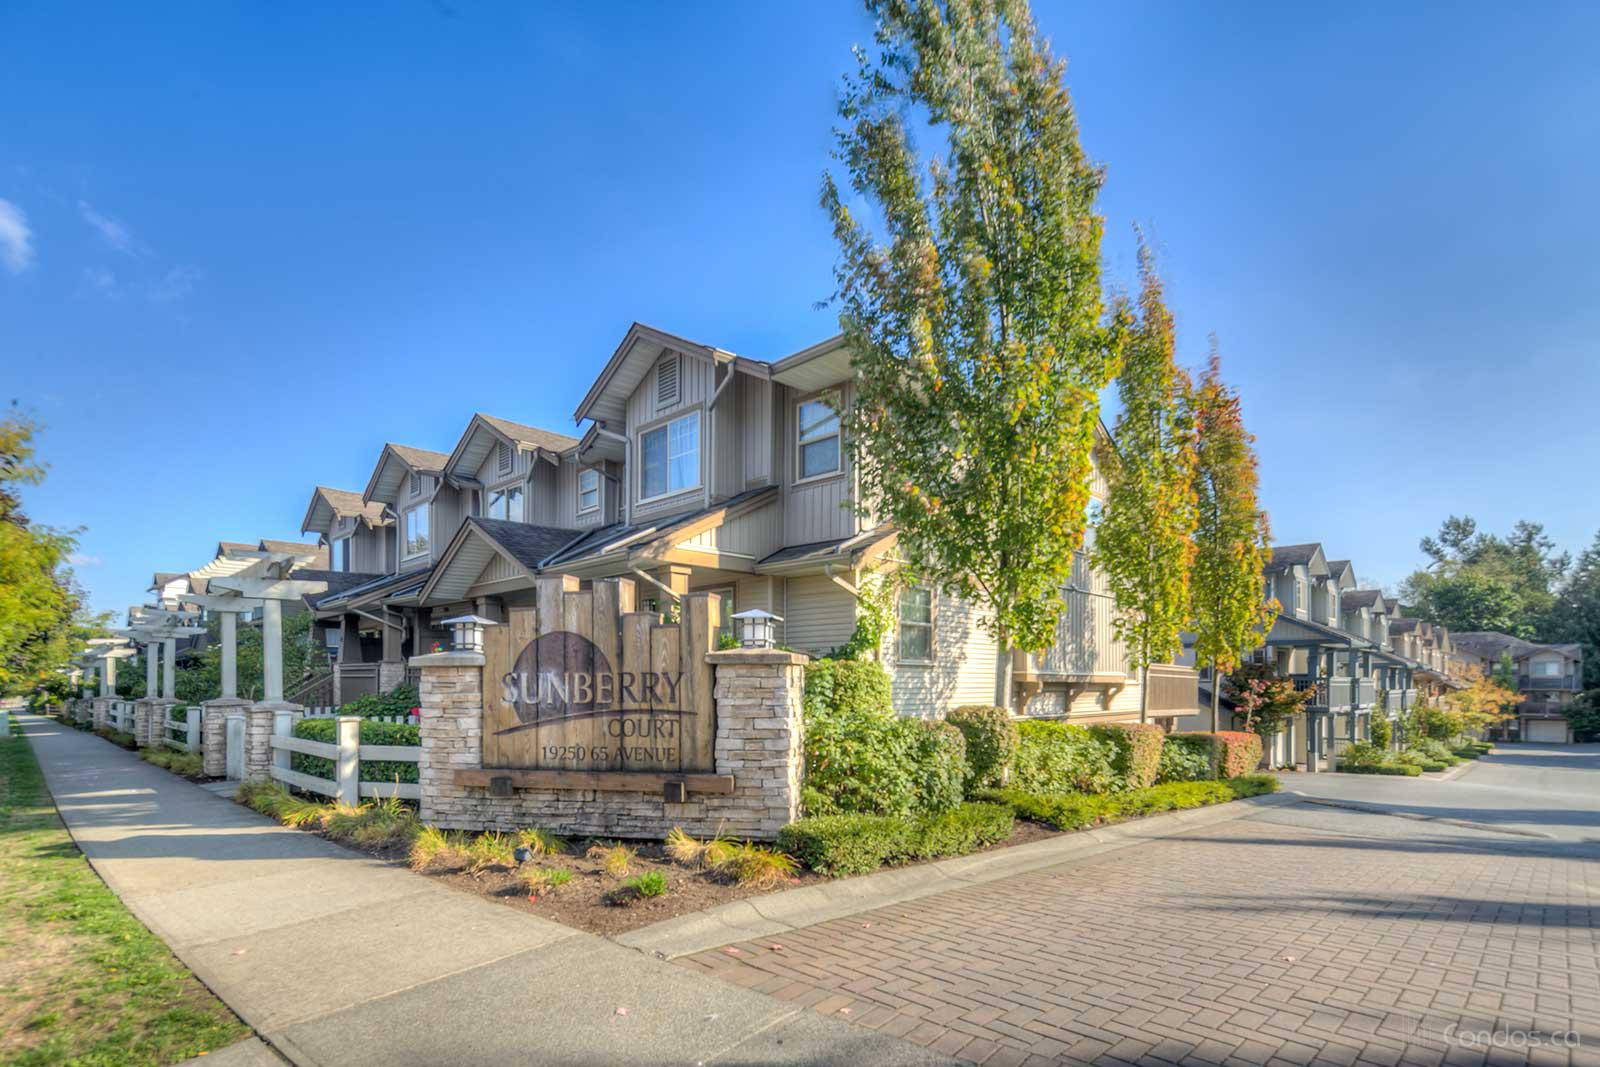 Sunberry Court at 19250 65 Ave, Surrey 1